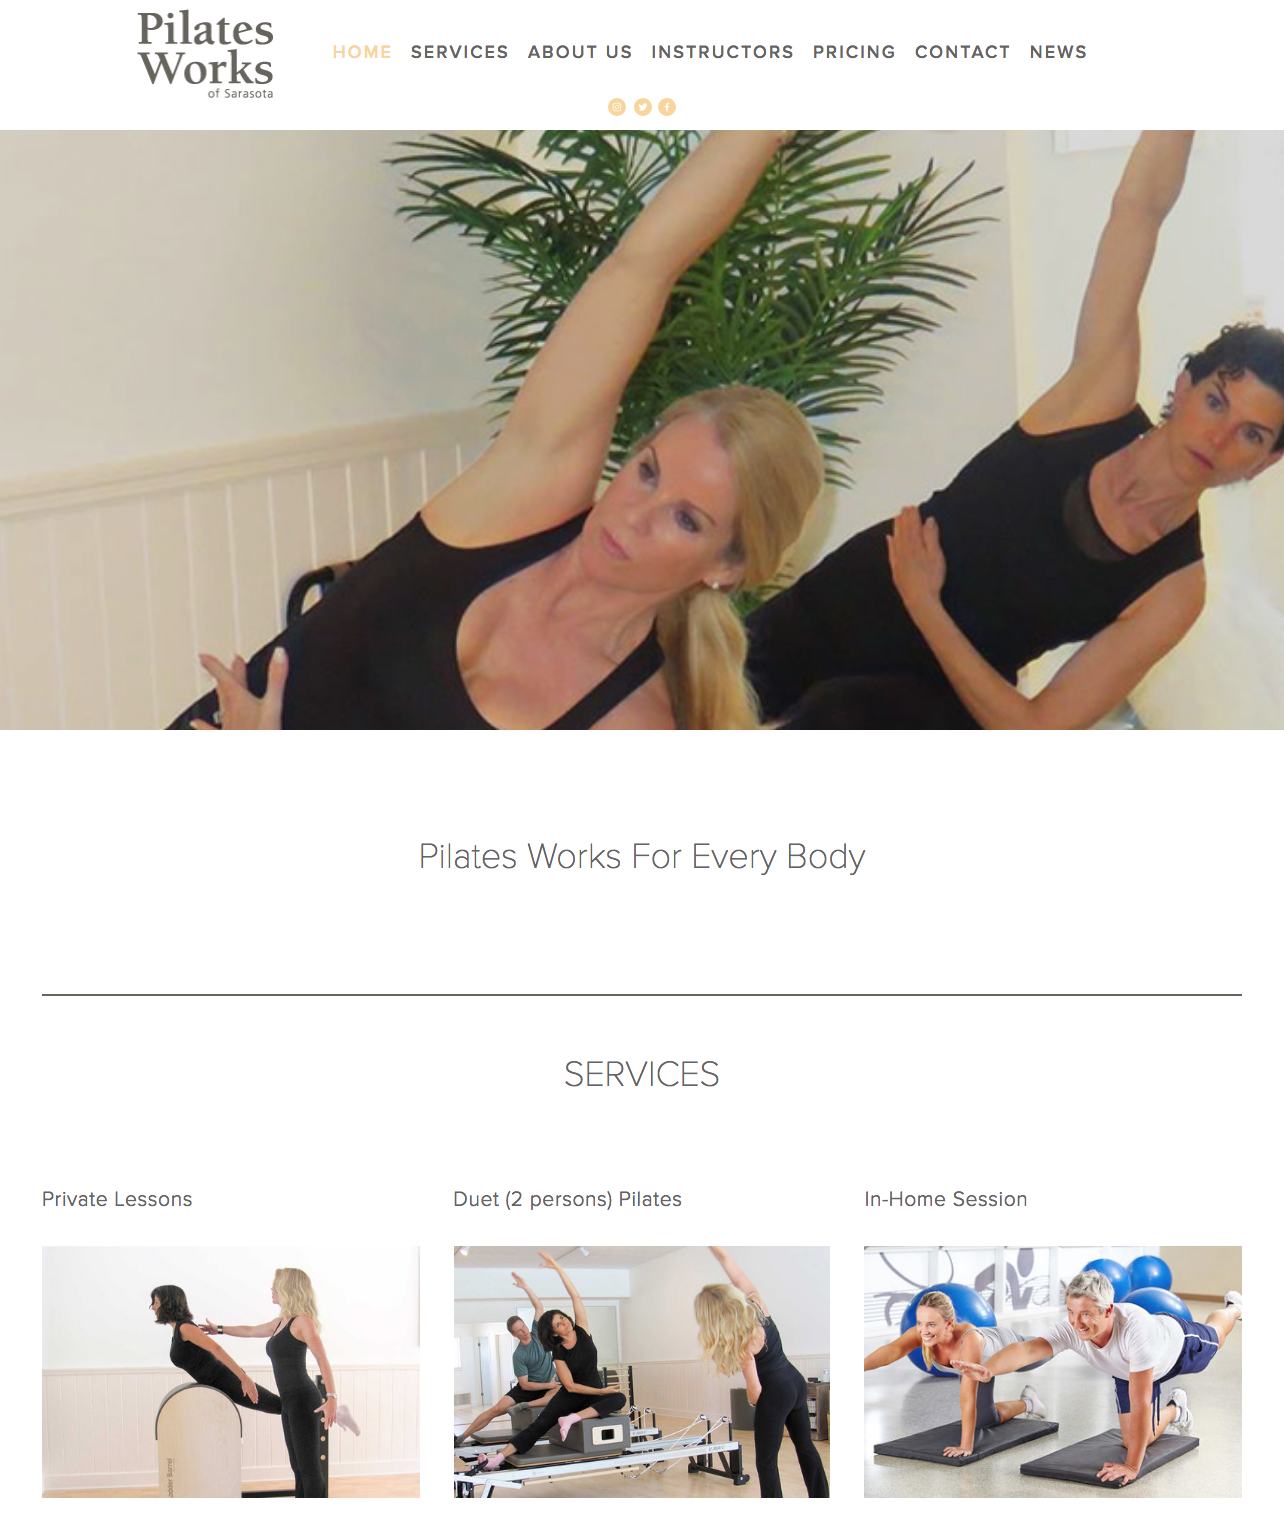 pilates-works-of-sarasota-home-page.png